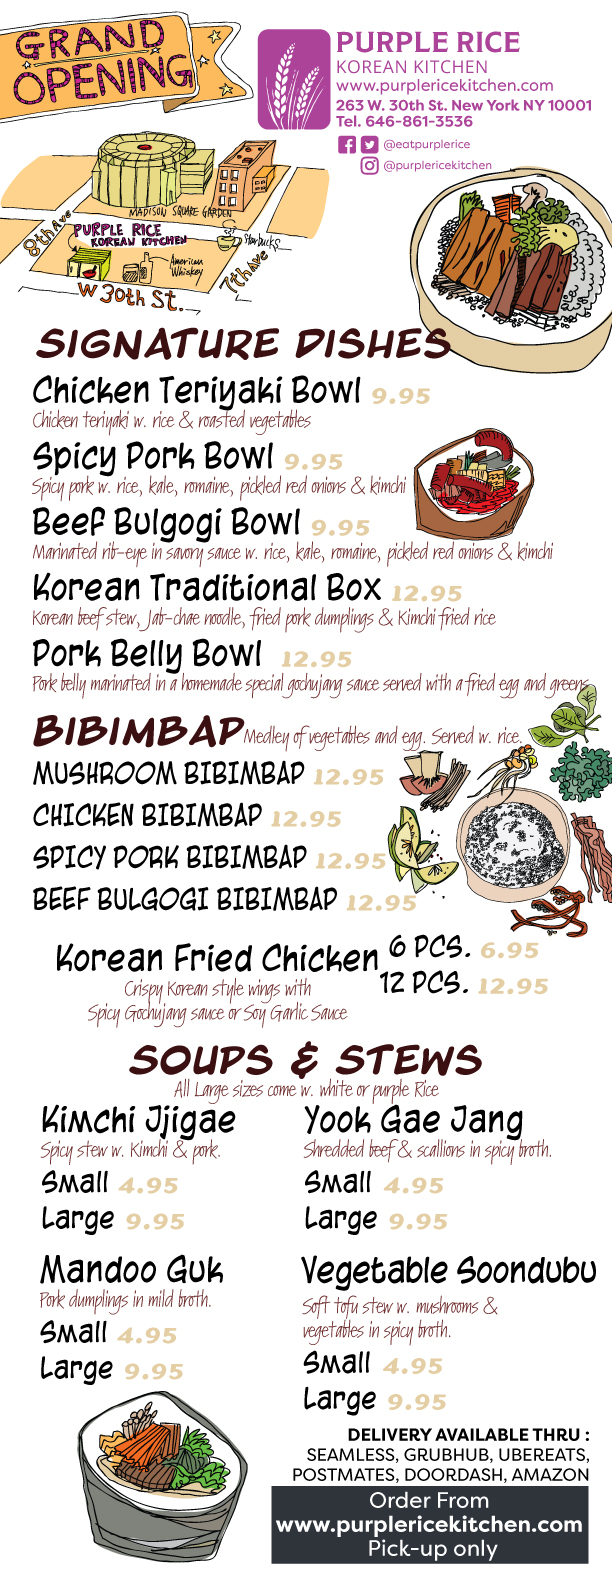 Purple-rice-korean-kitchen-in-store-menu-front